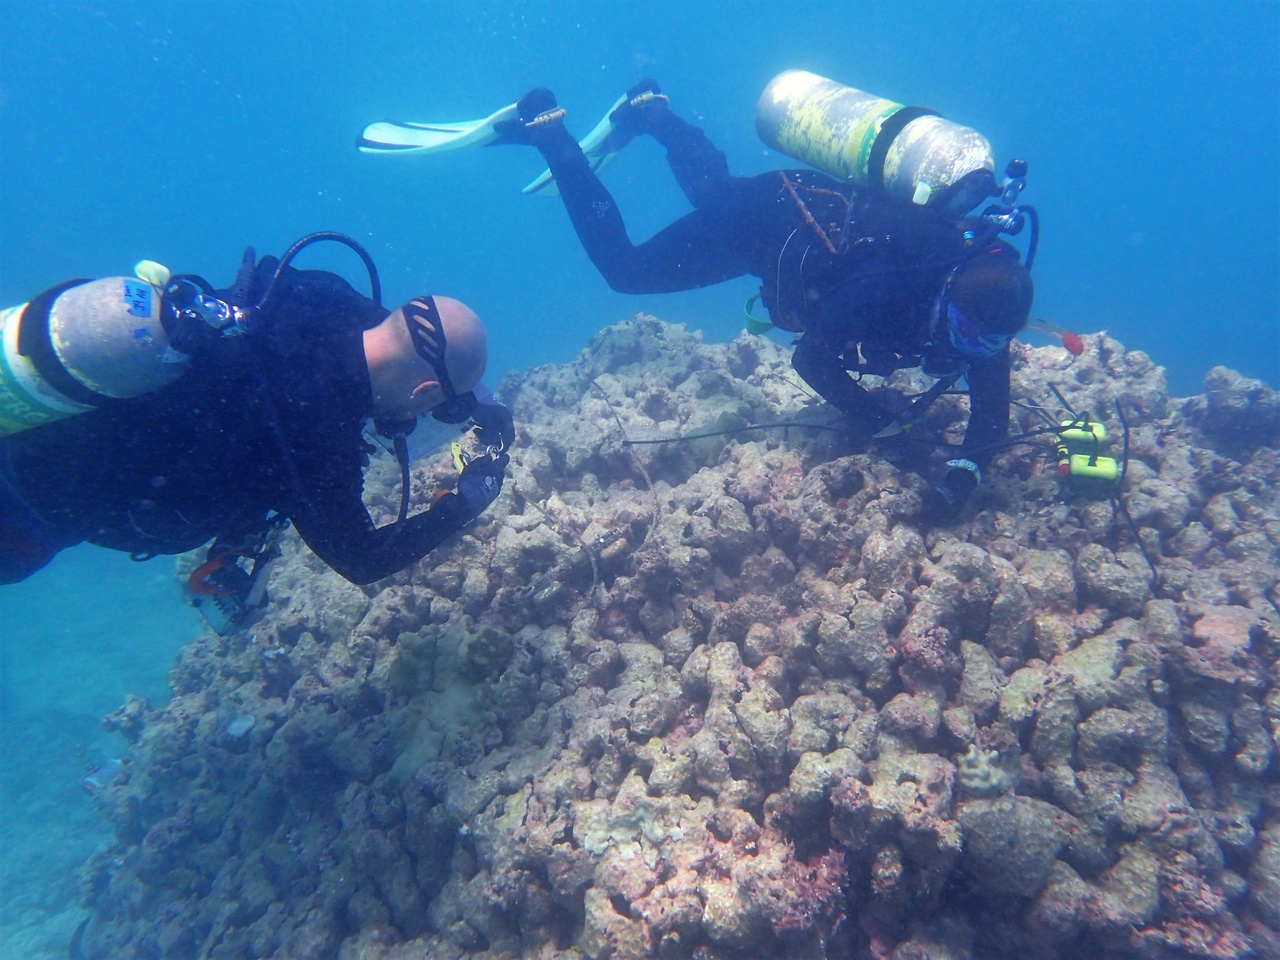 Team members Kerry Reardon and Ari Halperin retrieve and replace temperature loggers and conduct a bleaching survey at Lisianski. <i>photo: NOAA Fisheries/Jennifer Samson. </i>